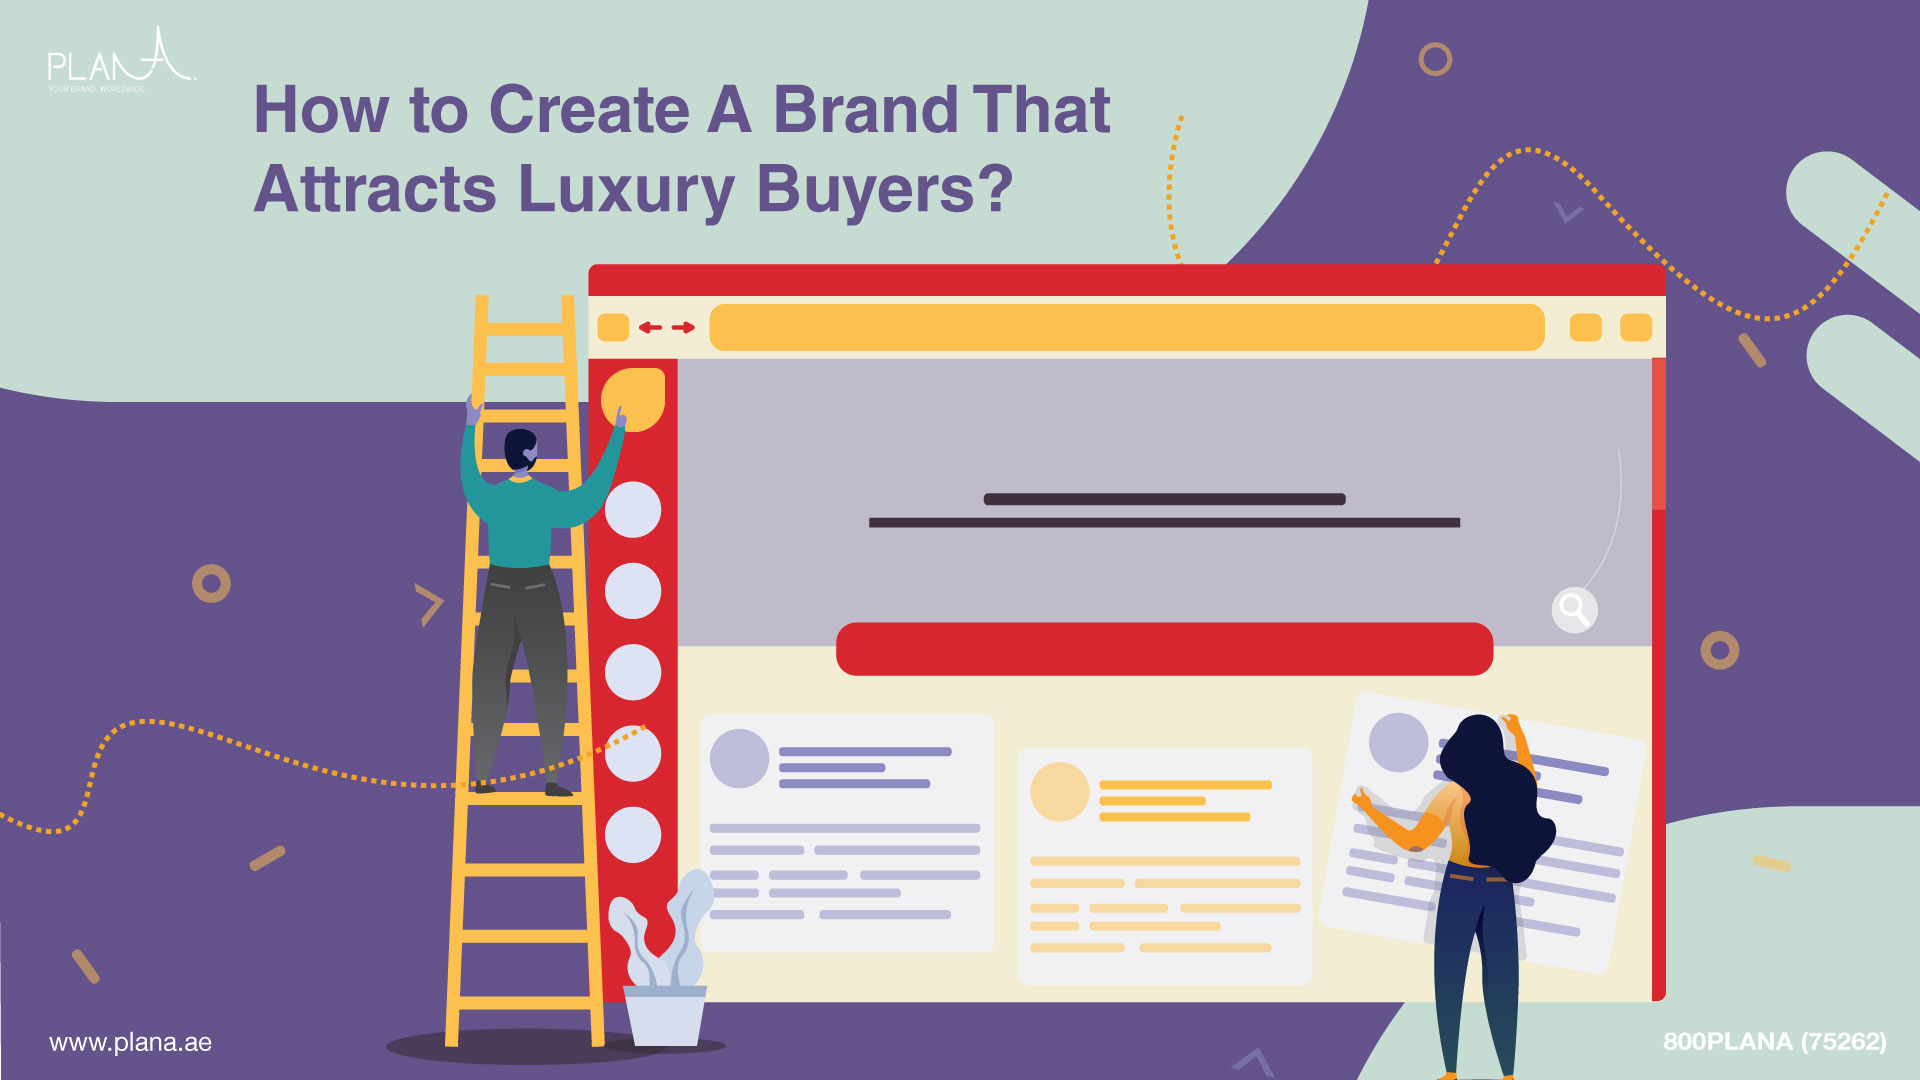 How Can You Create A Brand That Attracts Middle East Luxury Buyers?